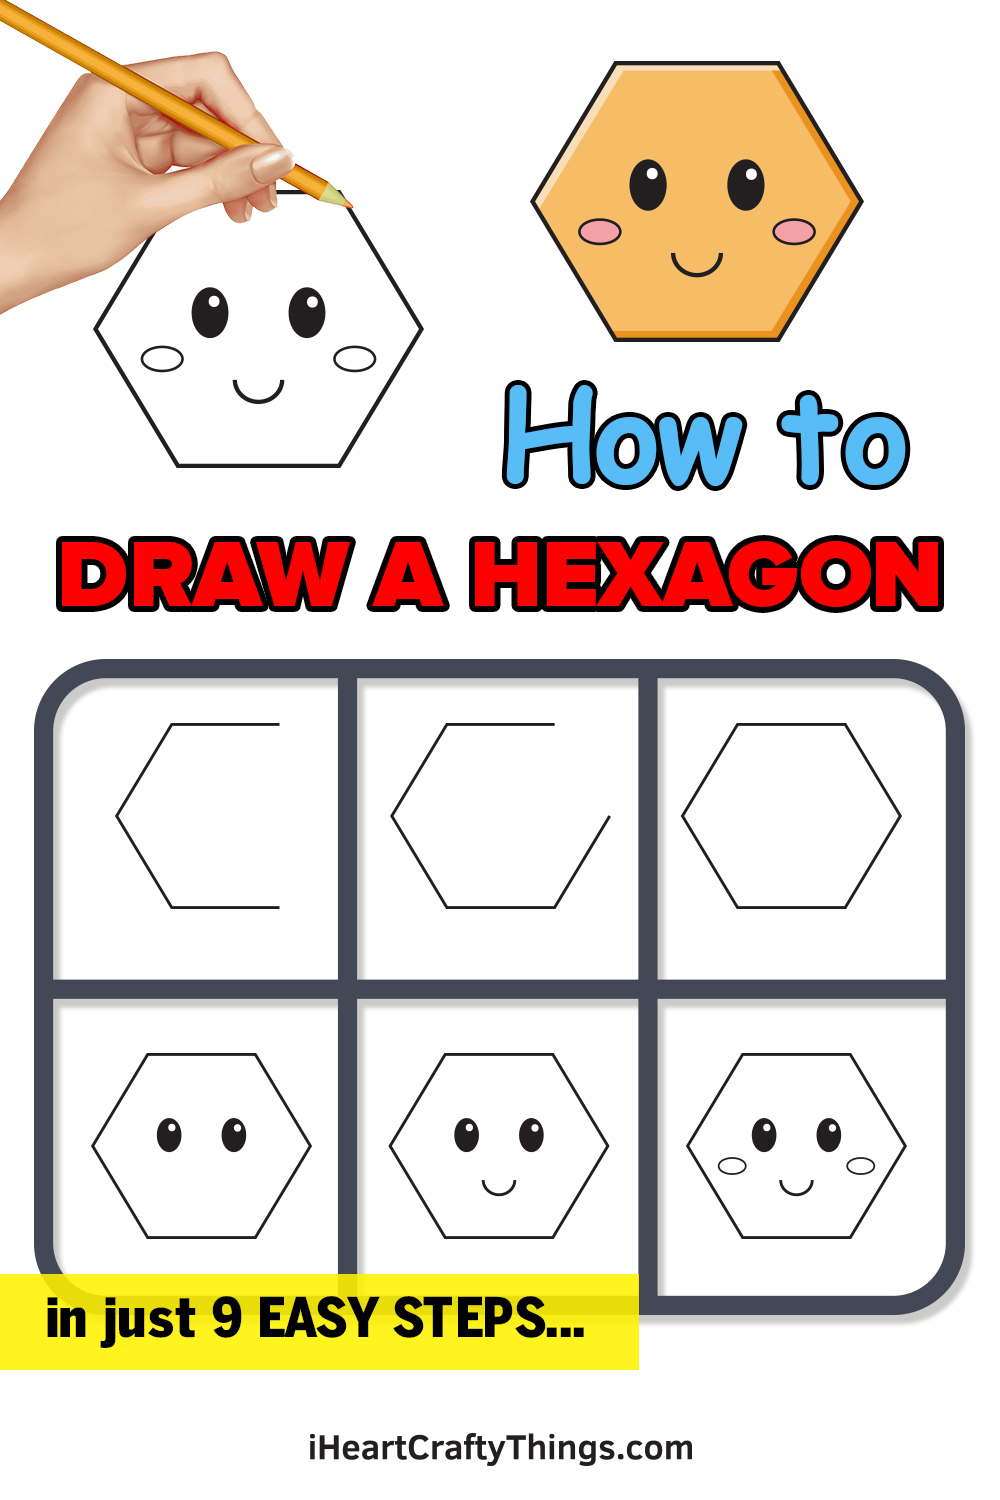 how to draw hexagon in 9 easy steps